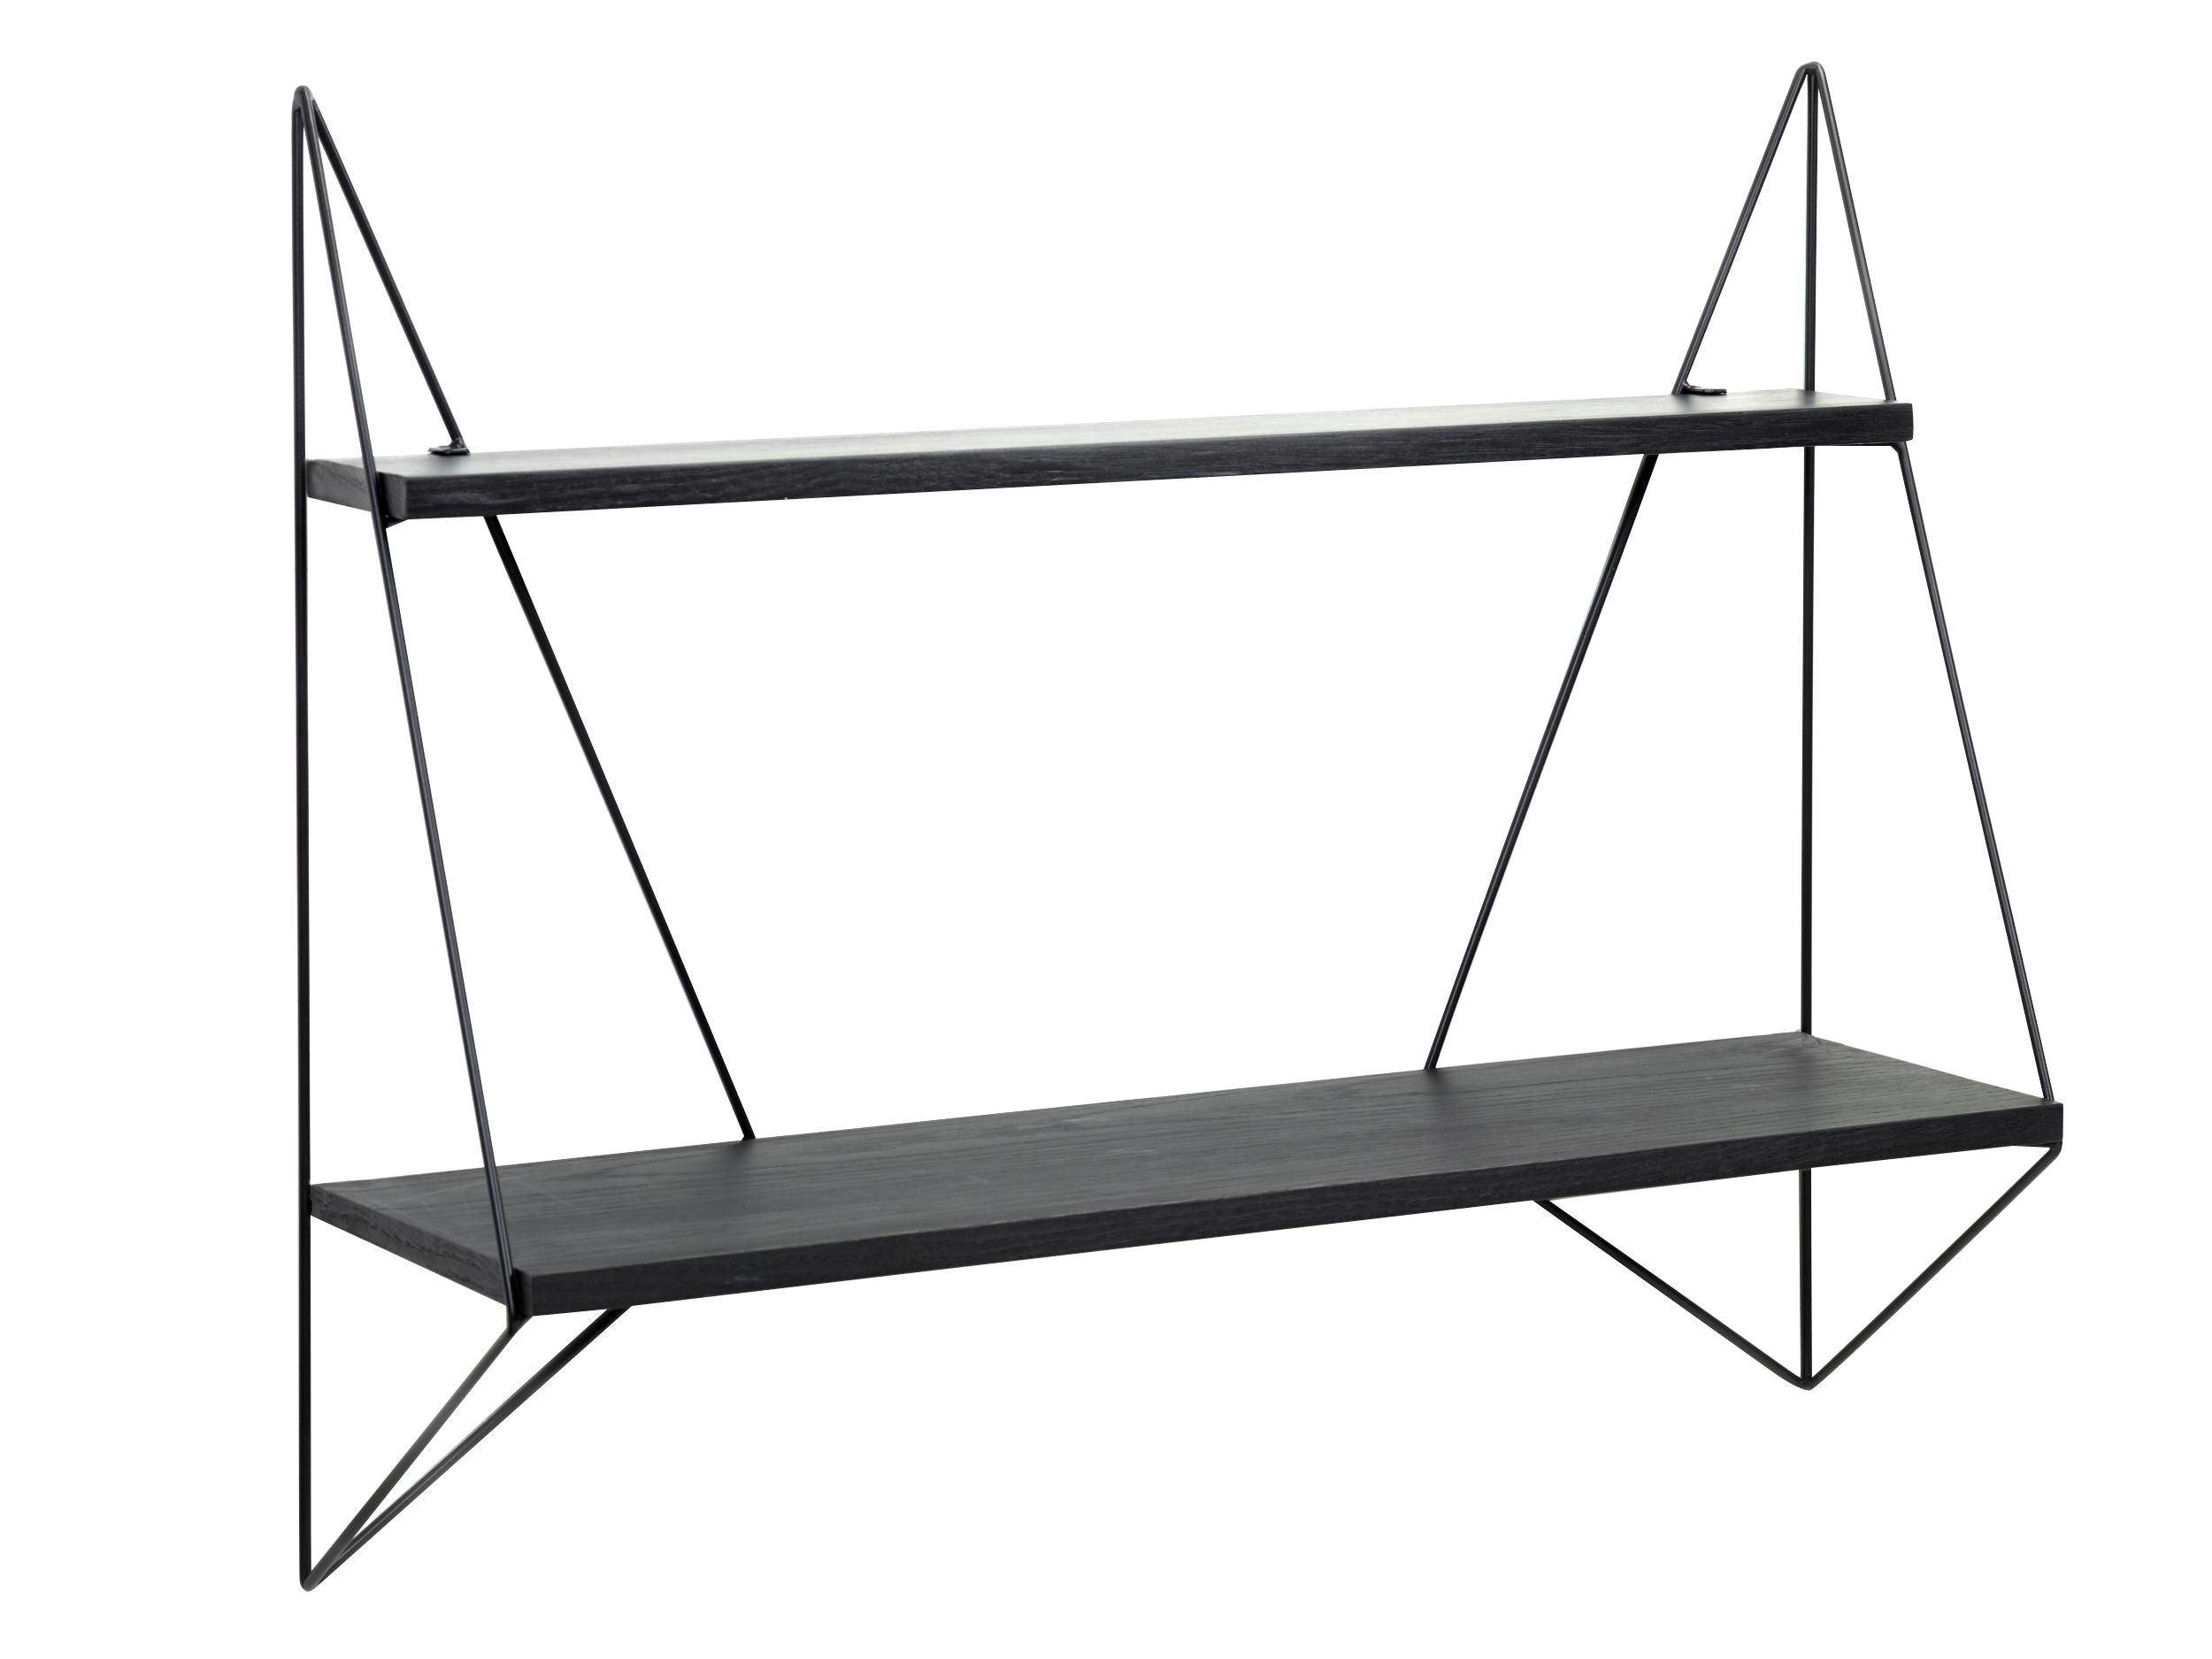 Furniture - Bookcases & Bookshelves - Butterfly Simple Shelf - L 75 x H 64 cm by Serax - Black - Lacquered metal, Tinted oak plywood